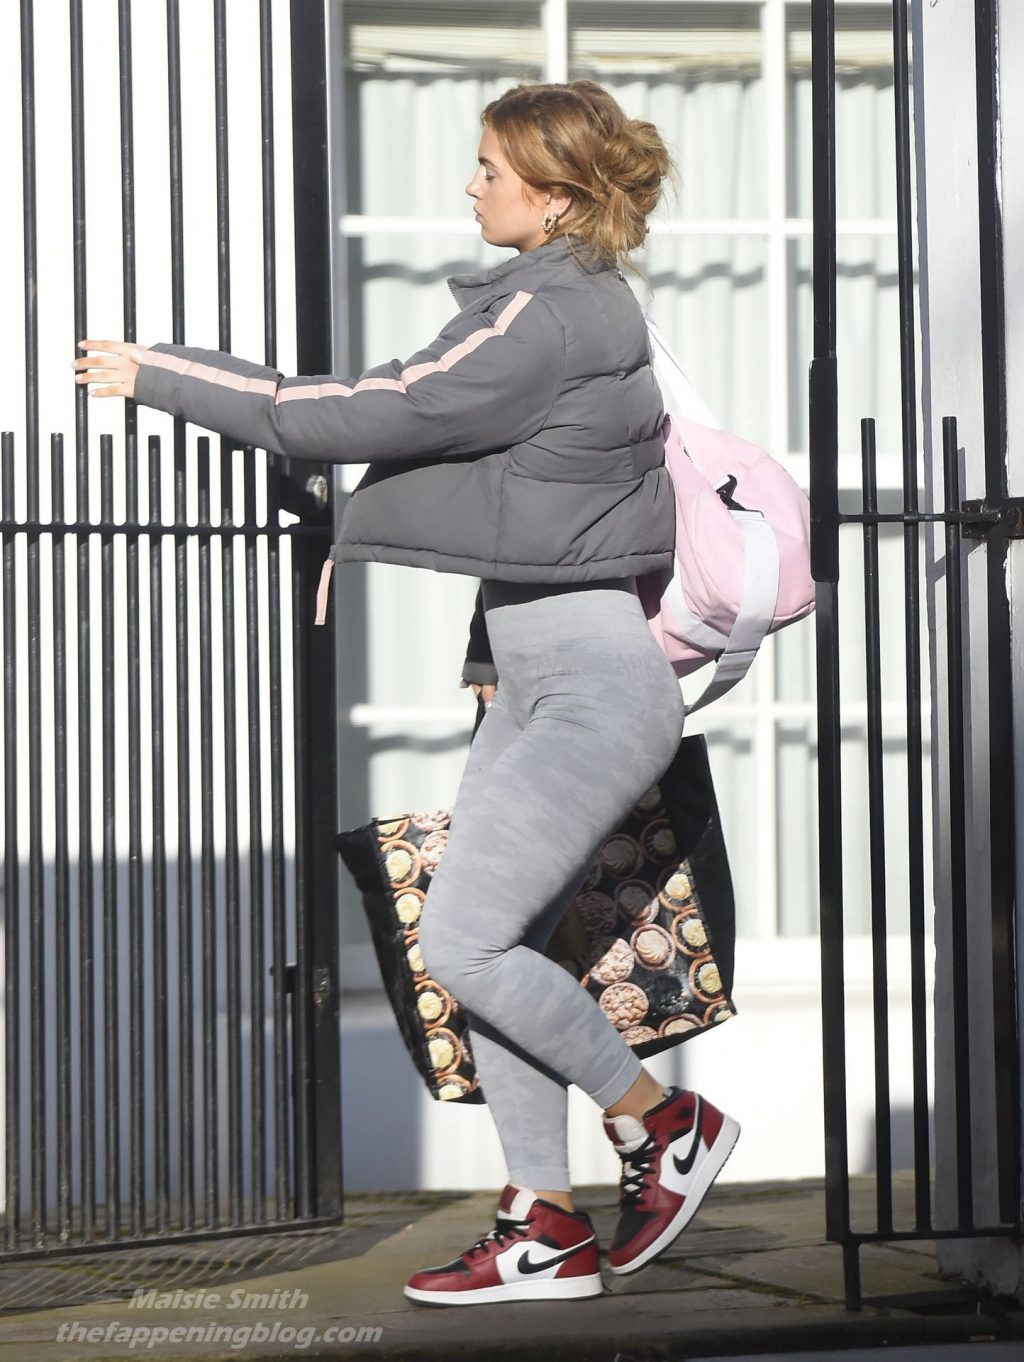 Maisie Smith is Spotted Heading to Strictly Come Dancing Training (20 Photos)